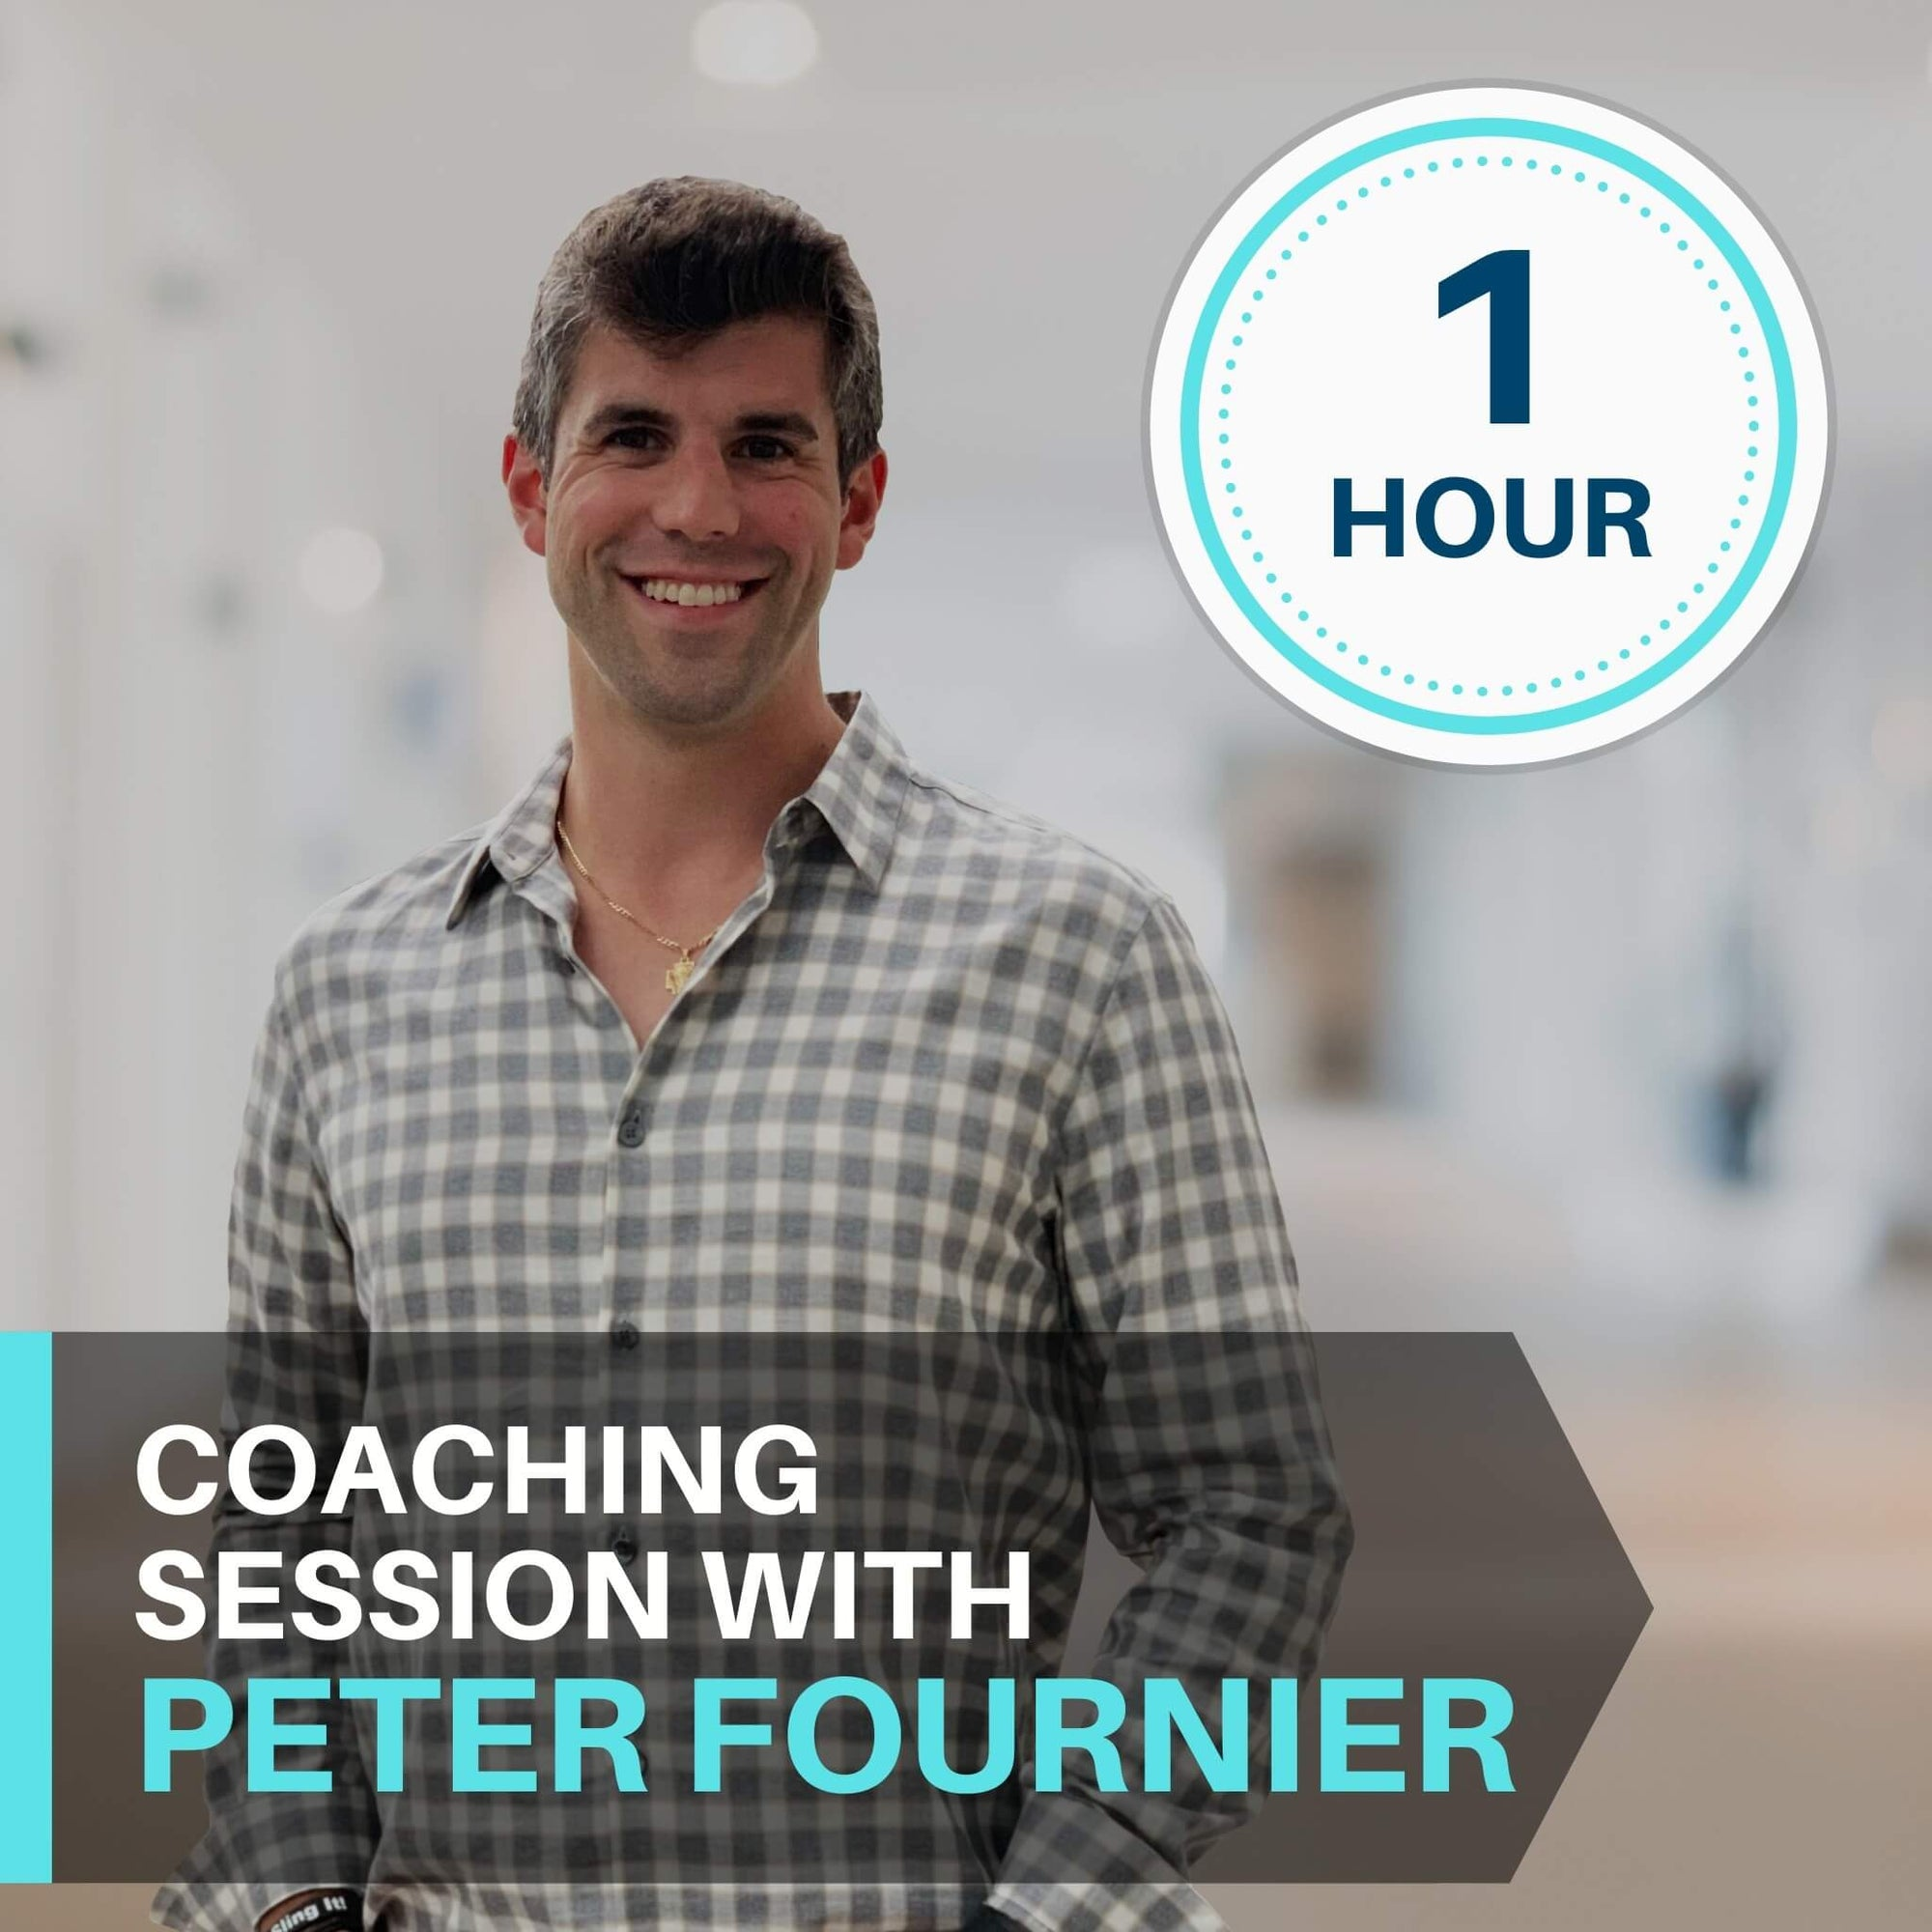 1 Hour Coaching Session With Peter Fournier